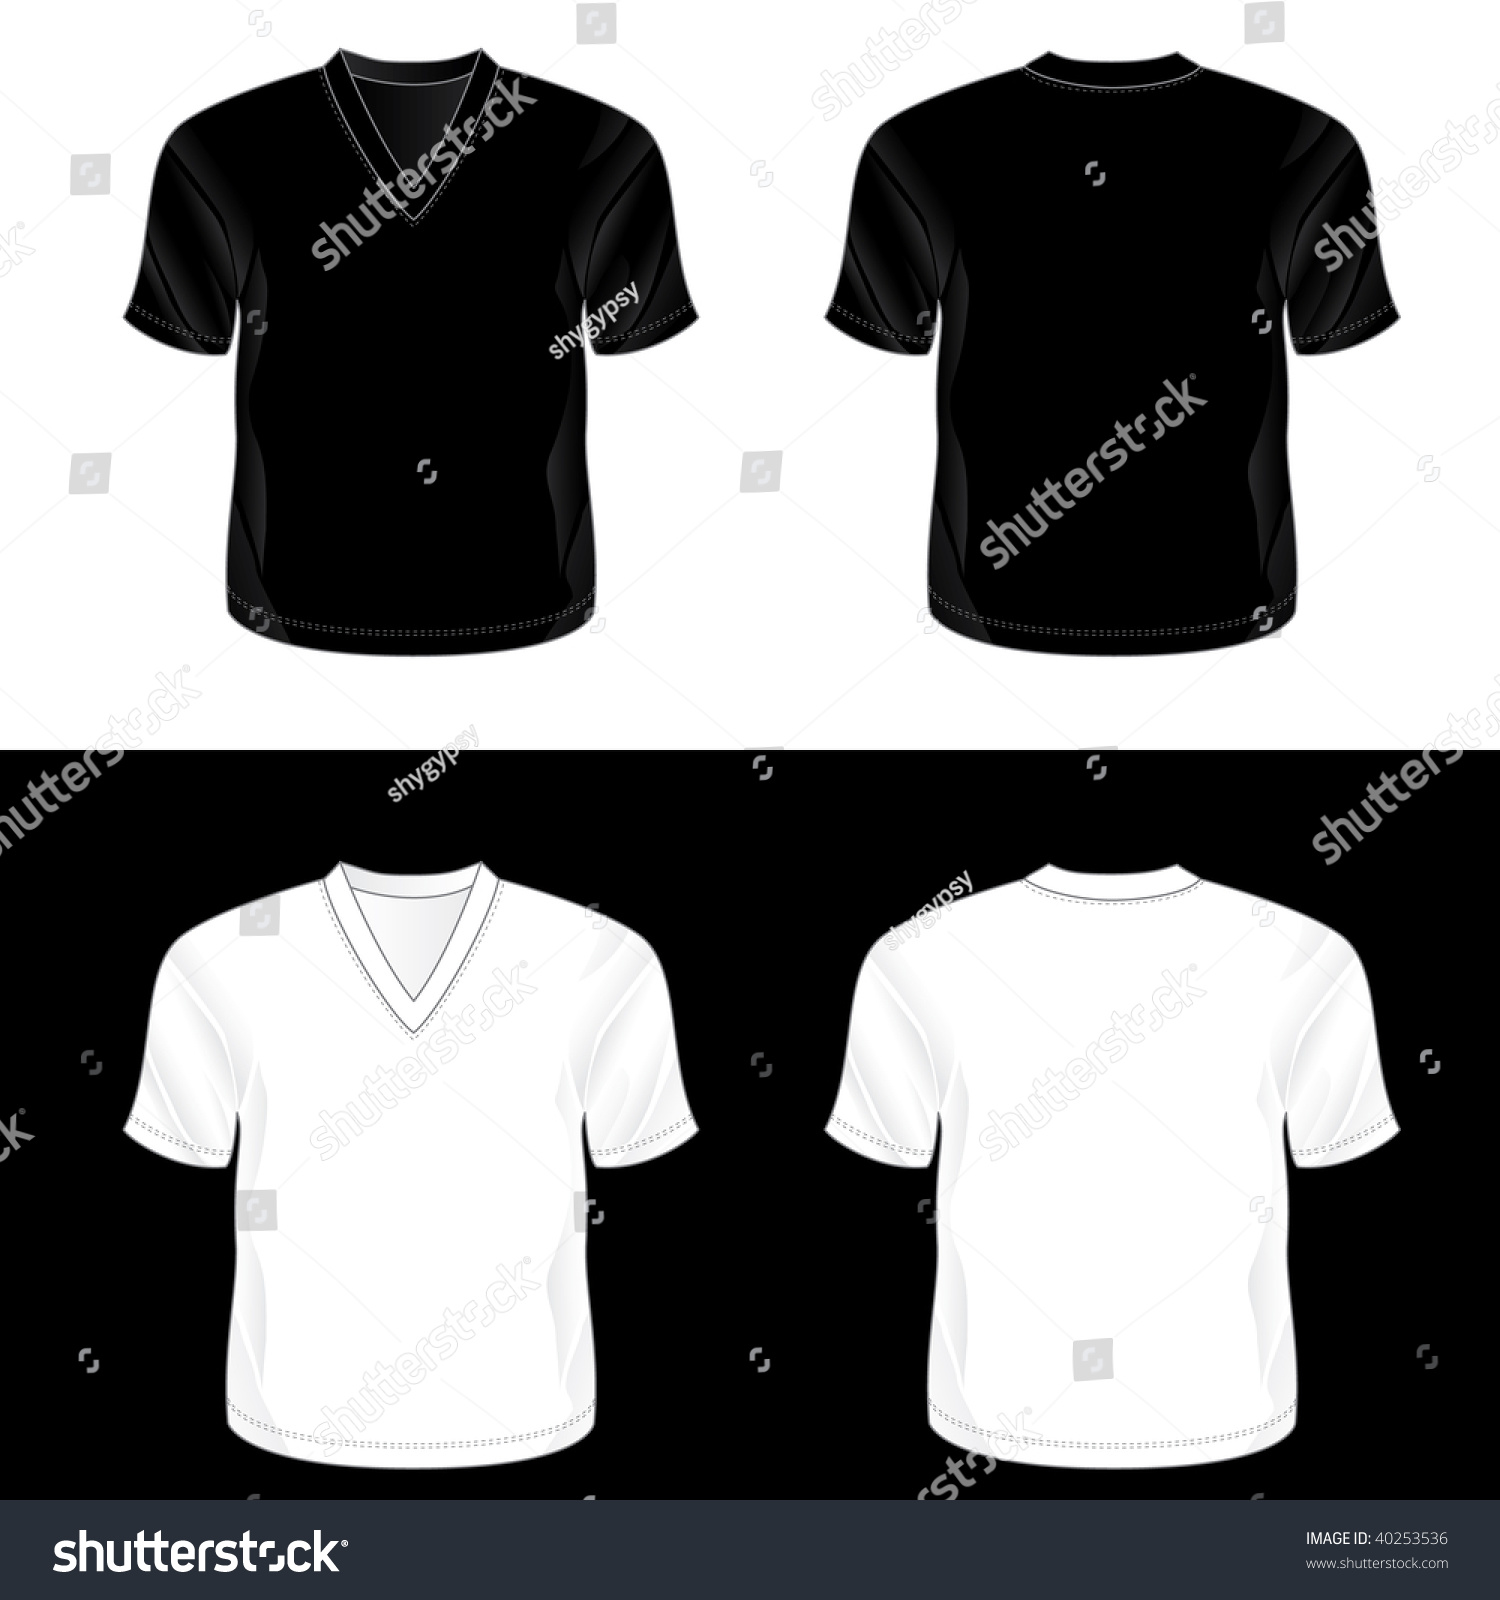 Design your own t shirt zazzle -  Zazzle T Shirt Template Plain White Shirt Template T Shirt Vectors Photos And Psd Files